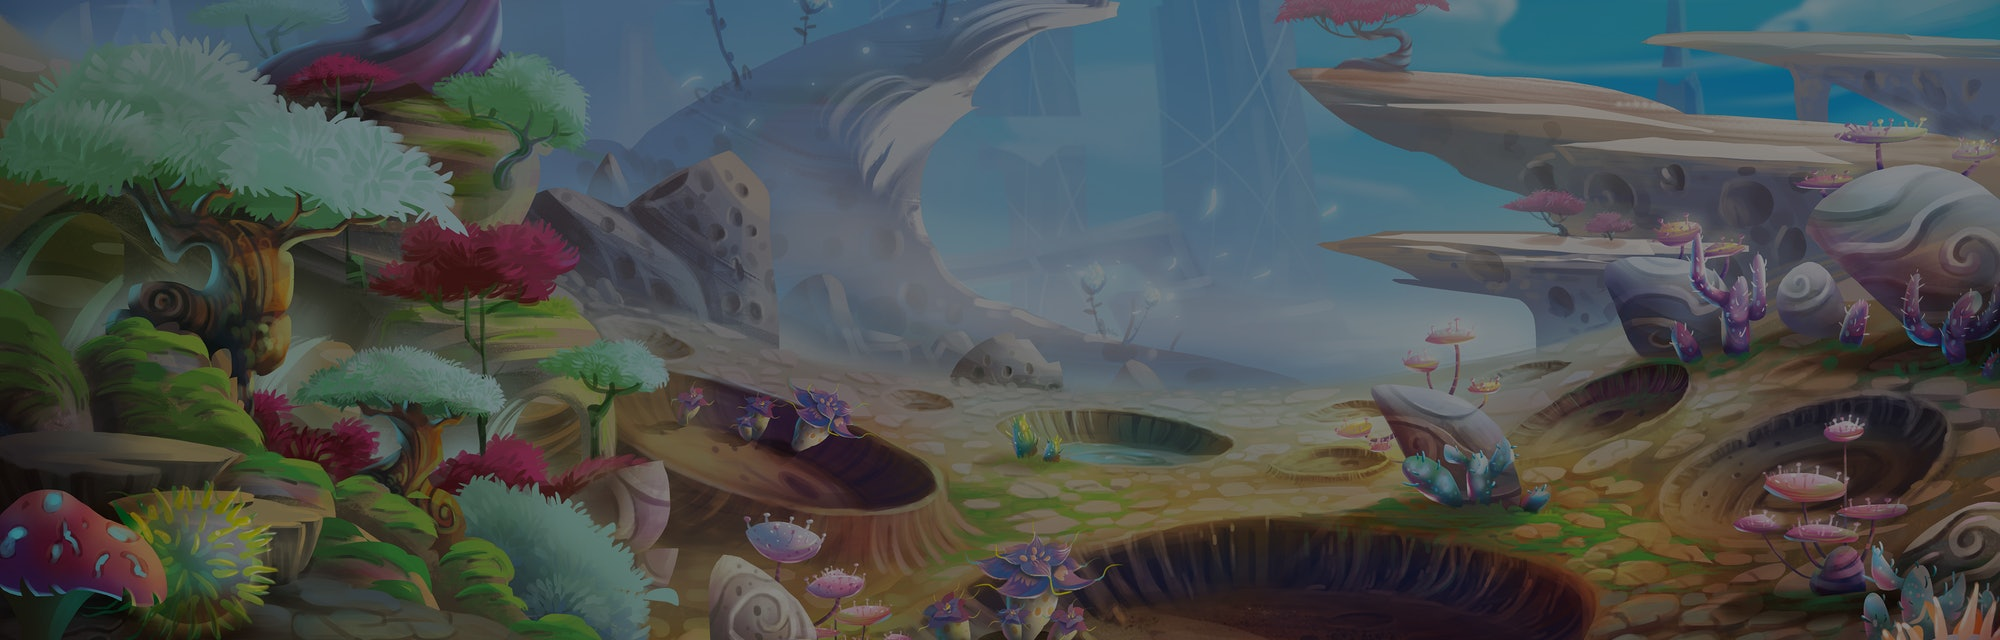 Alien Planet the Meteor Crafter with Fantastic, Realistic and Futuristic Style. Video Game's Digital...